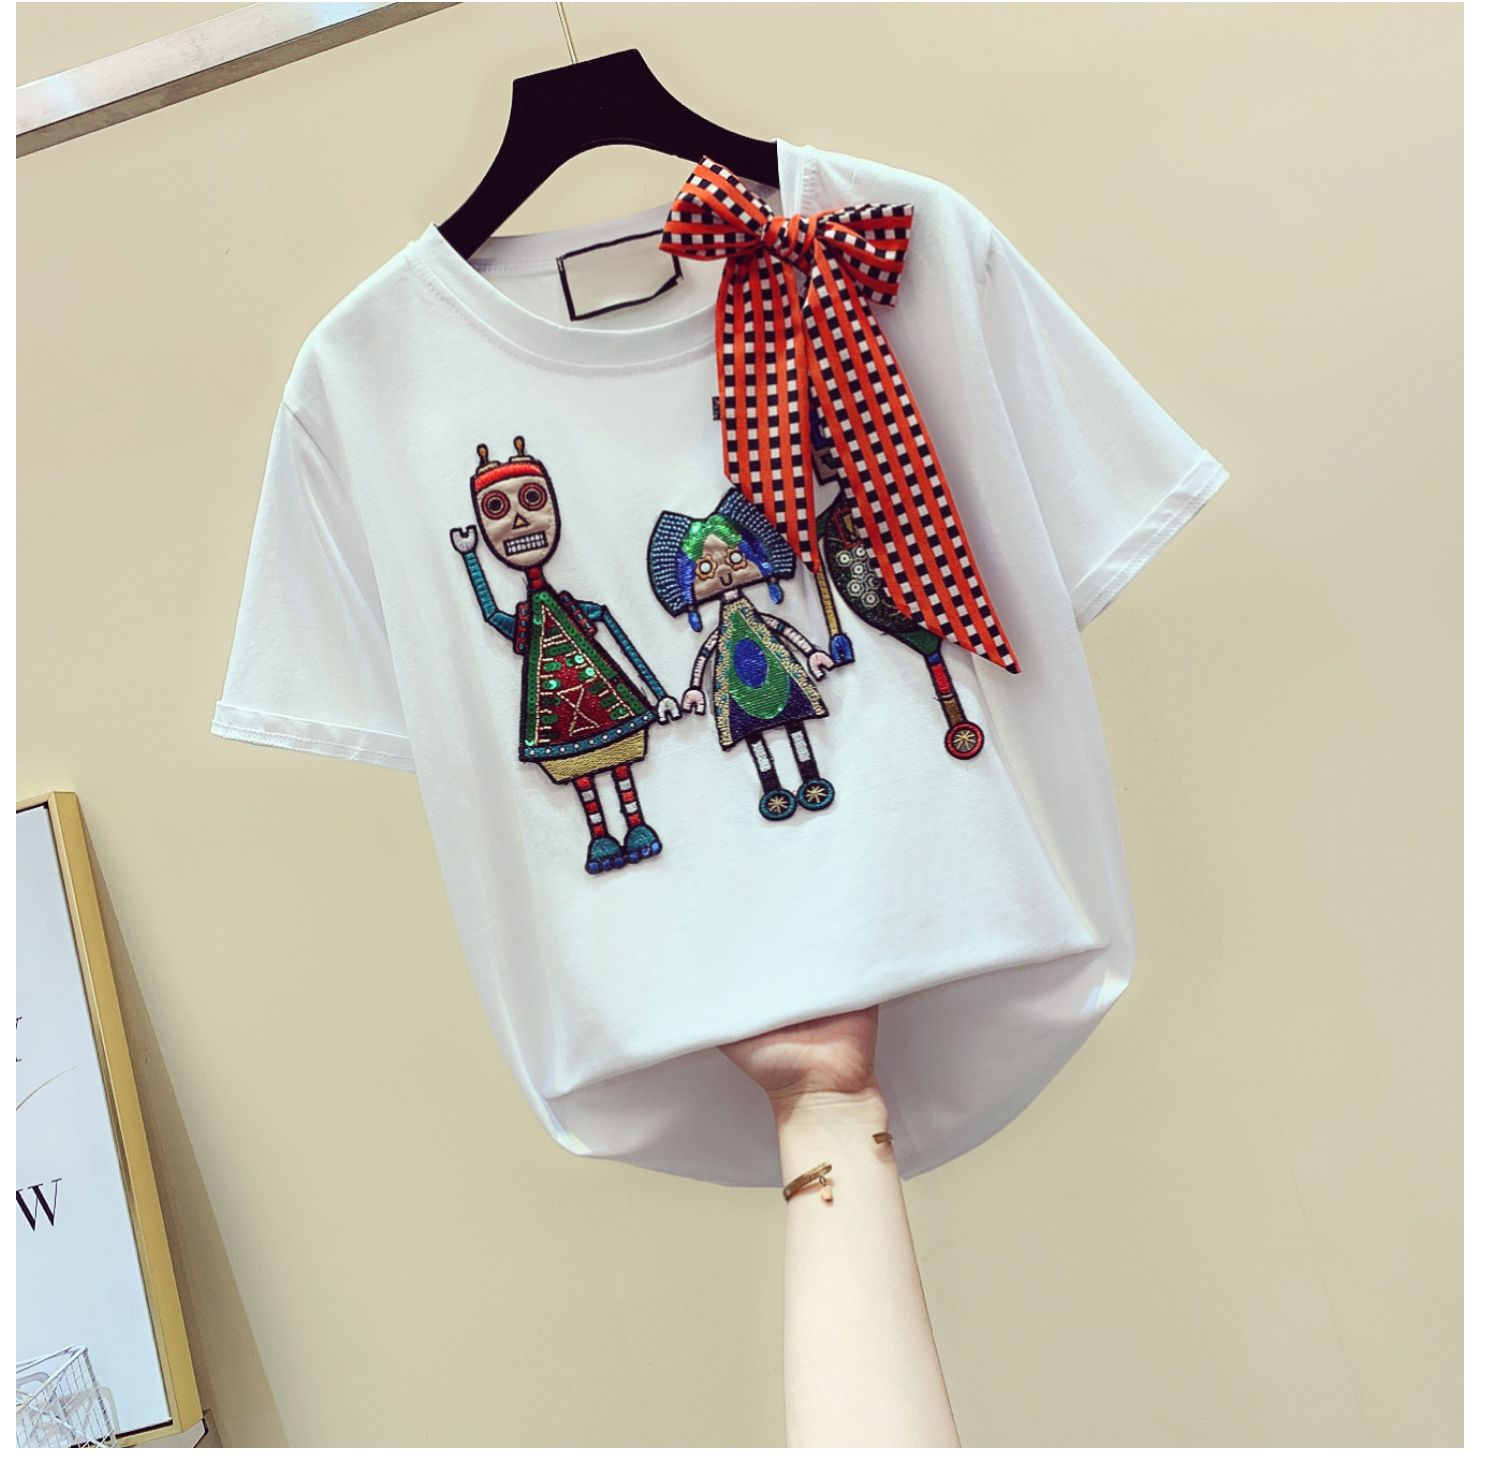 Embroidery sequins cartoon short sleeve t shirt women o-neck bow tee shirt femme cotton loose tshirt 2020 summer tops image